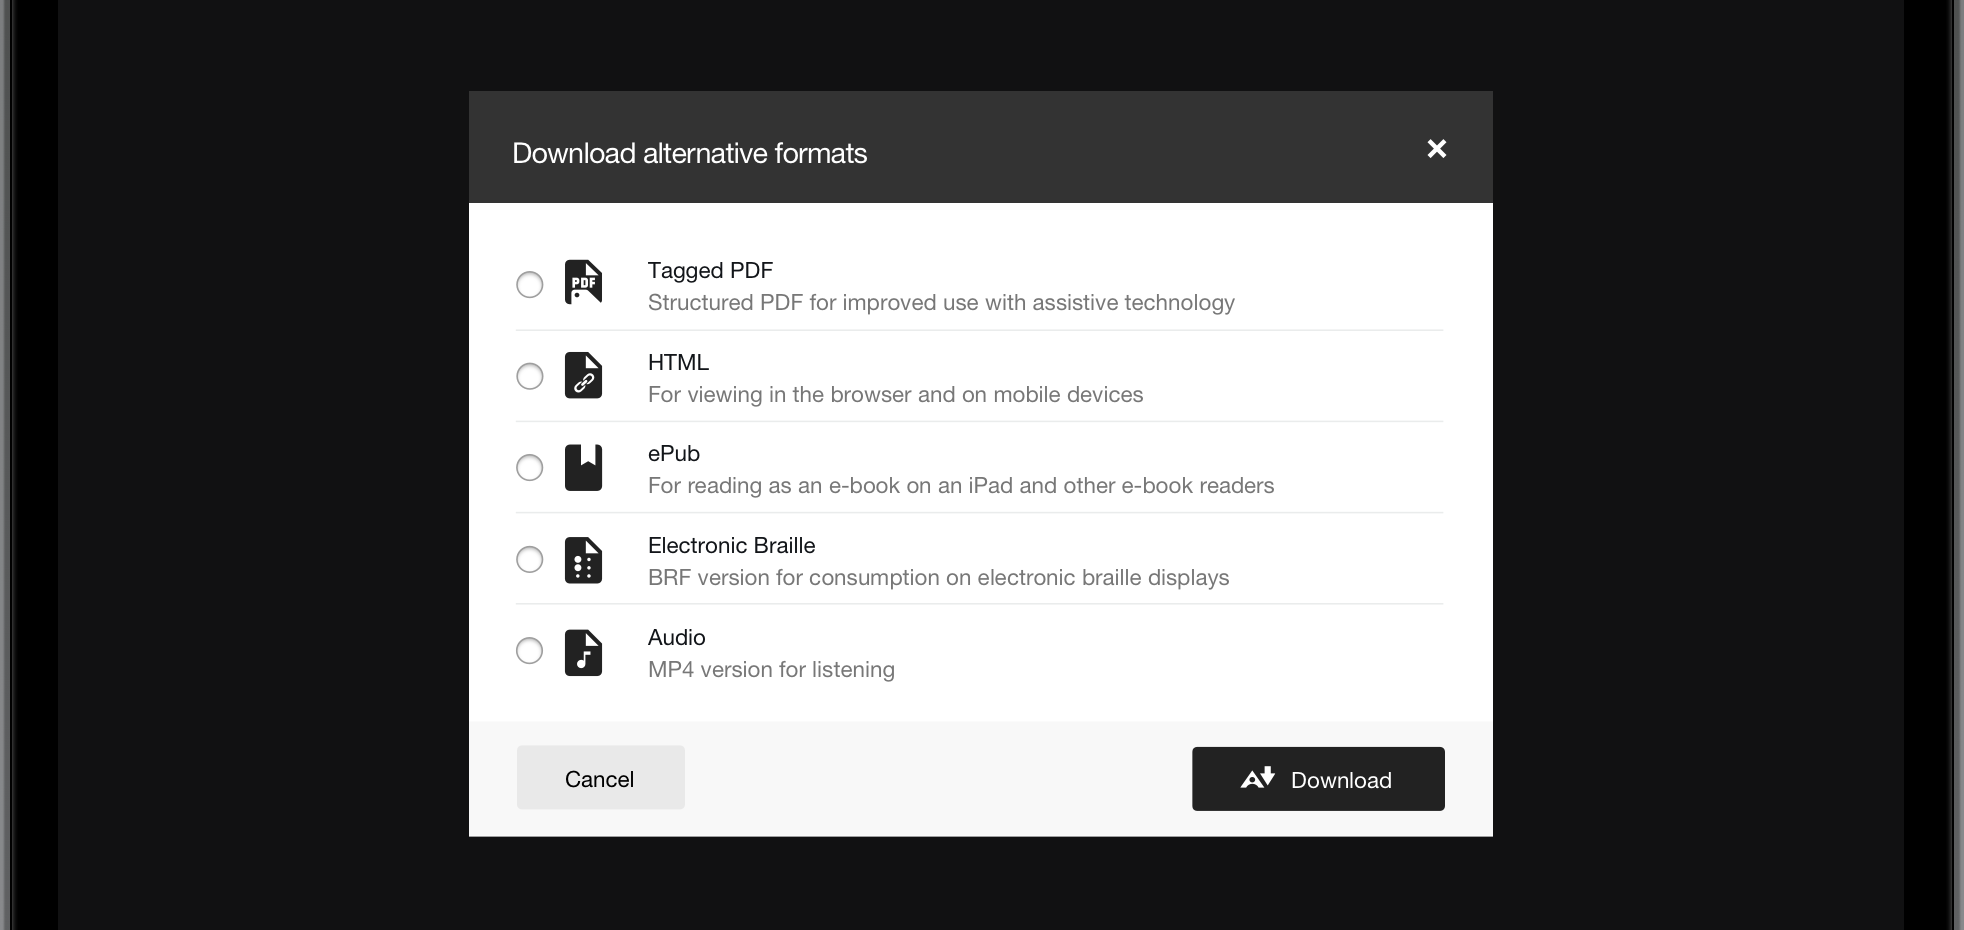 Blackboard Ally alternative formats interface showing various download options for content